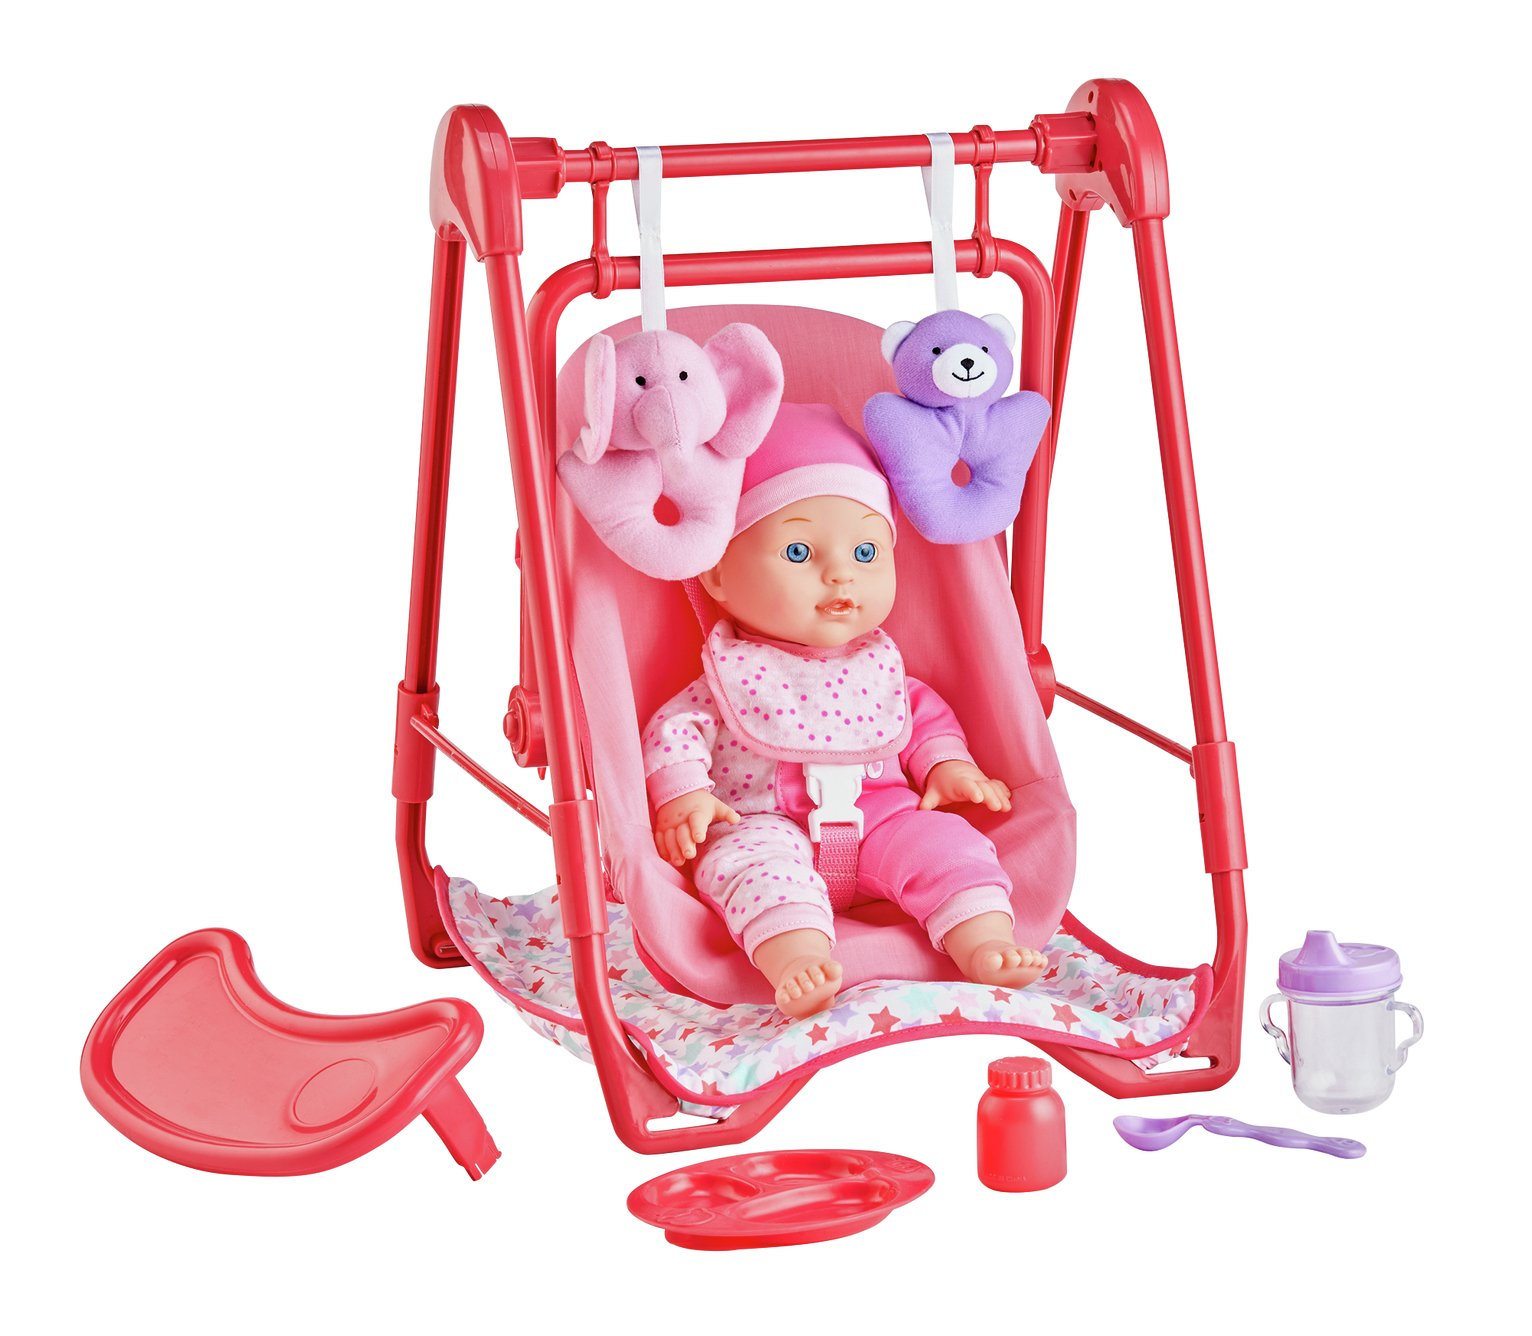 chair gym argos anti gravity reclining chairs buy chad valley babies to love 4 in 1 doll s activity unit dolls